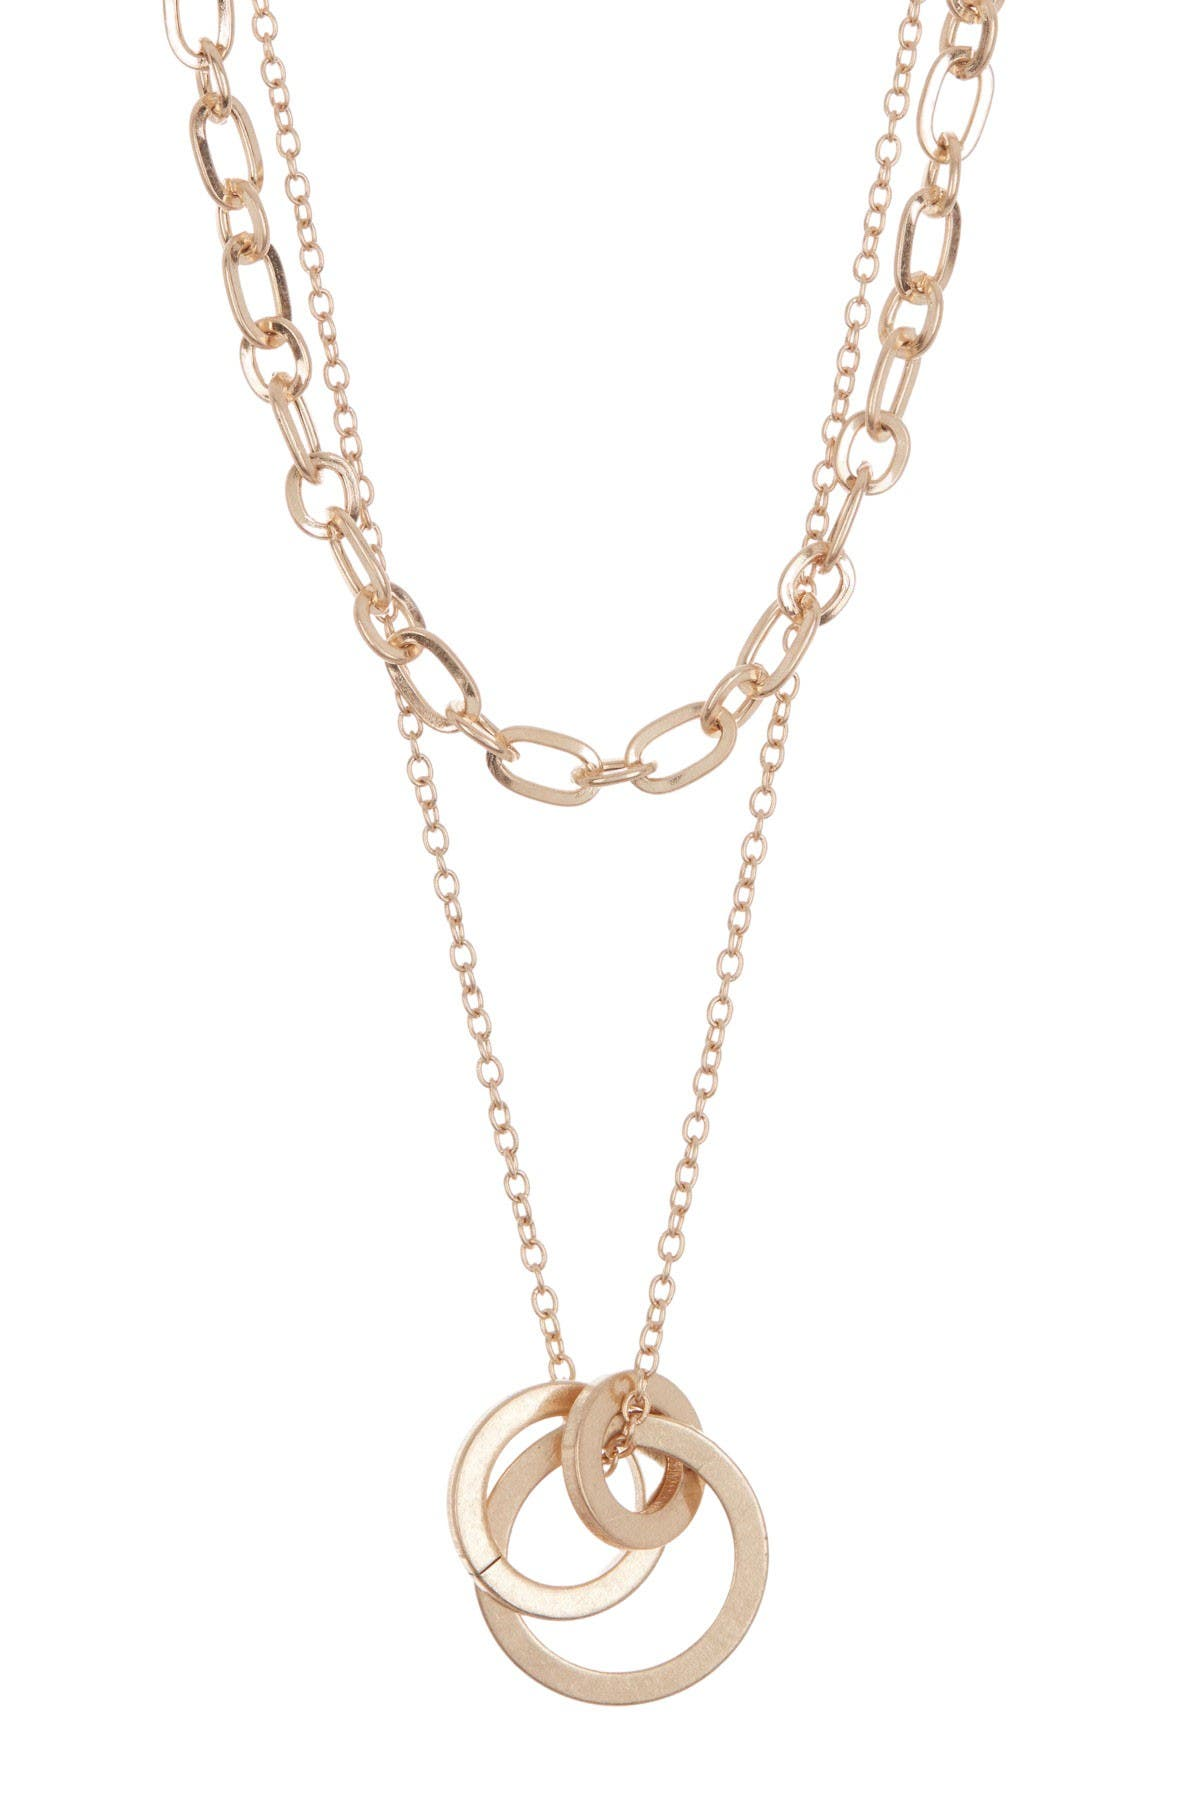 Image of AREA STARS Link Drop Circles Chain Necklace